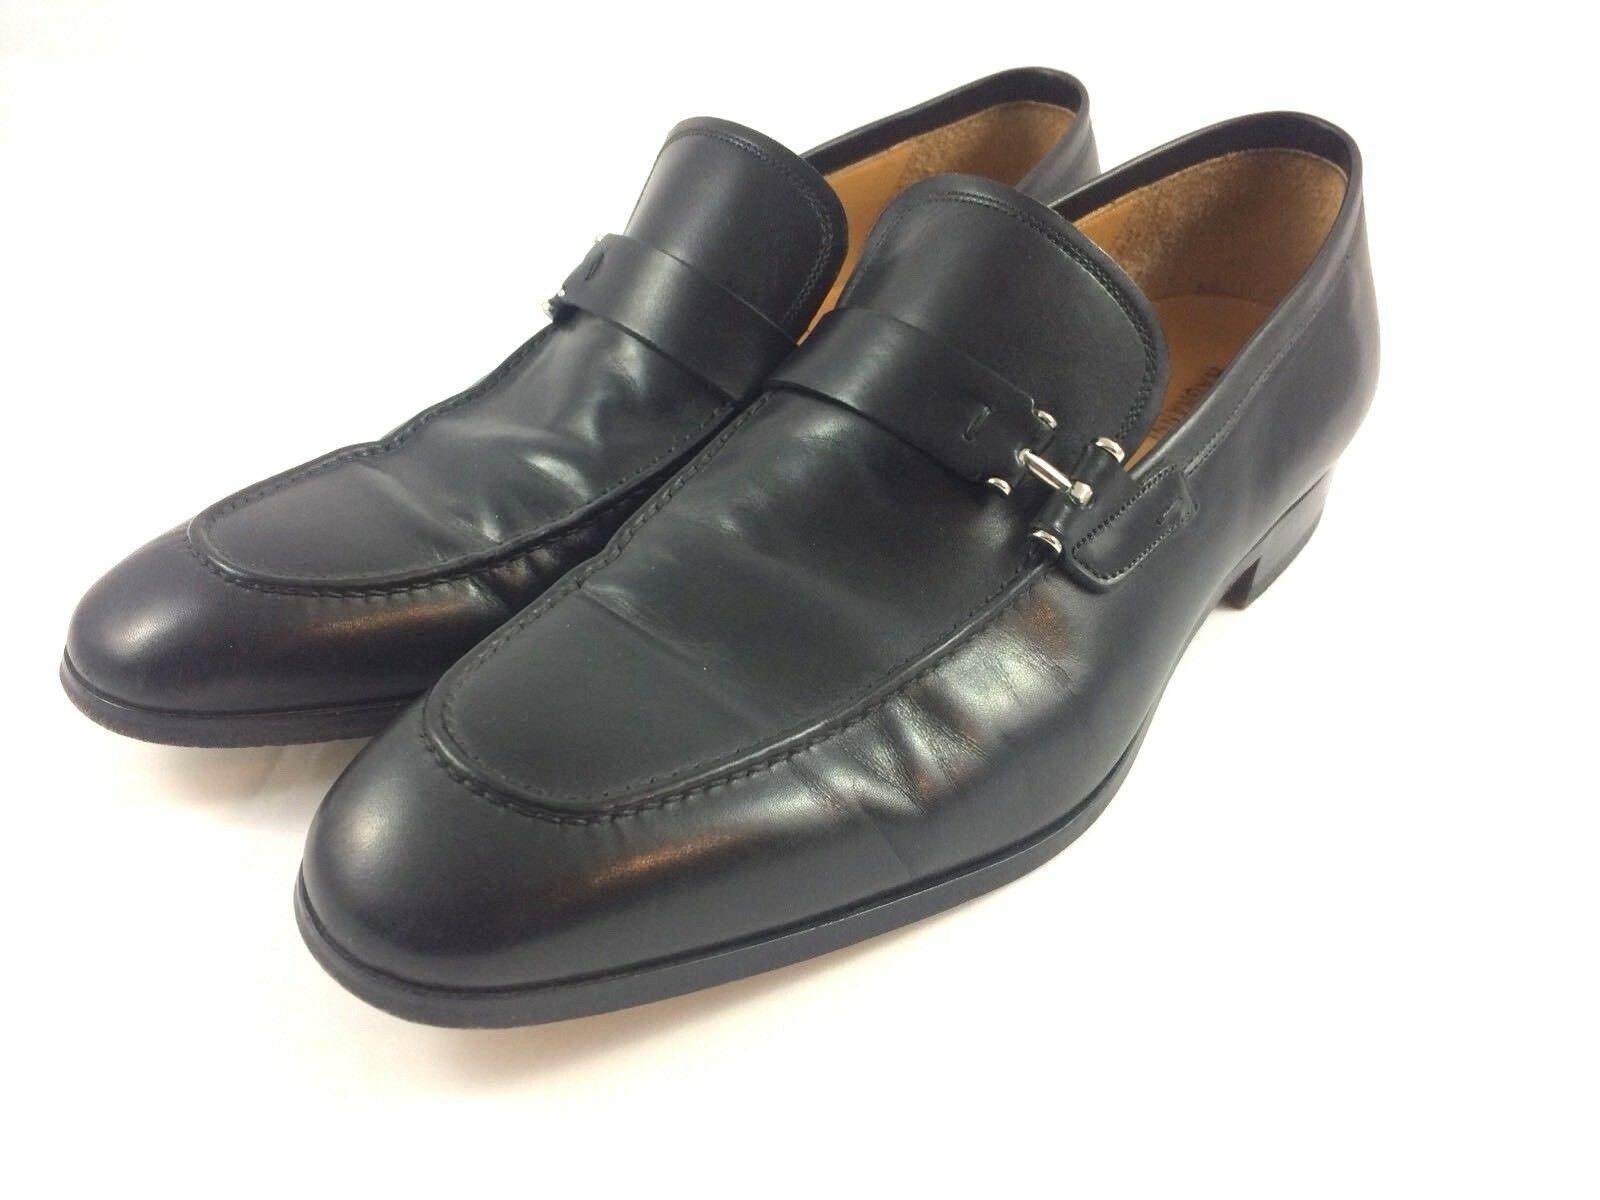 MAGNANNI Paseo Slip-On Dress Loafers with Strap Men's Shoe Size 9